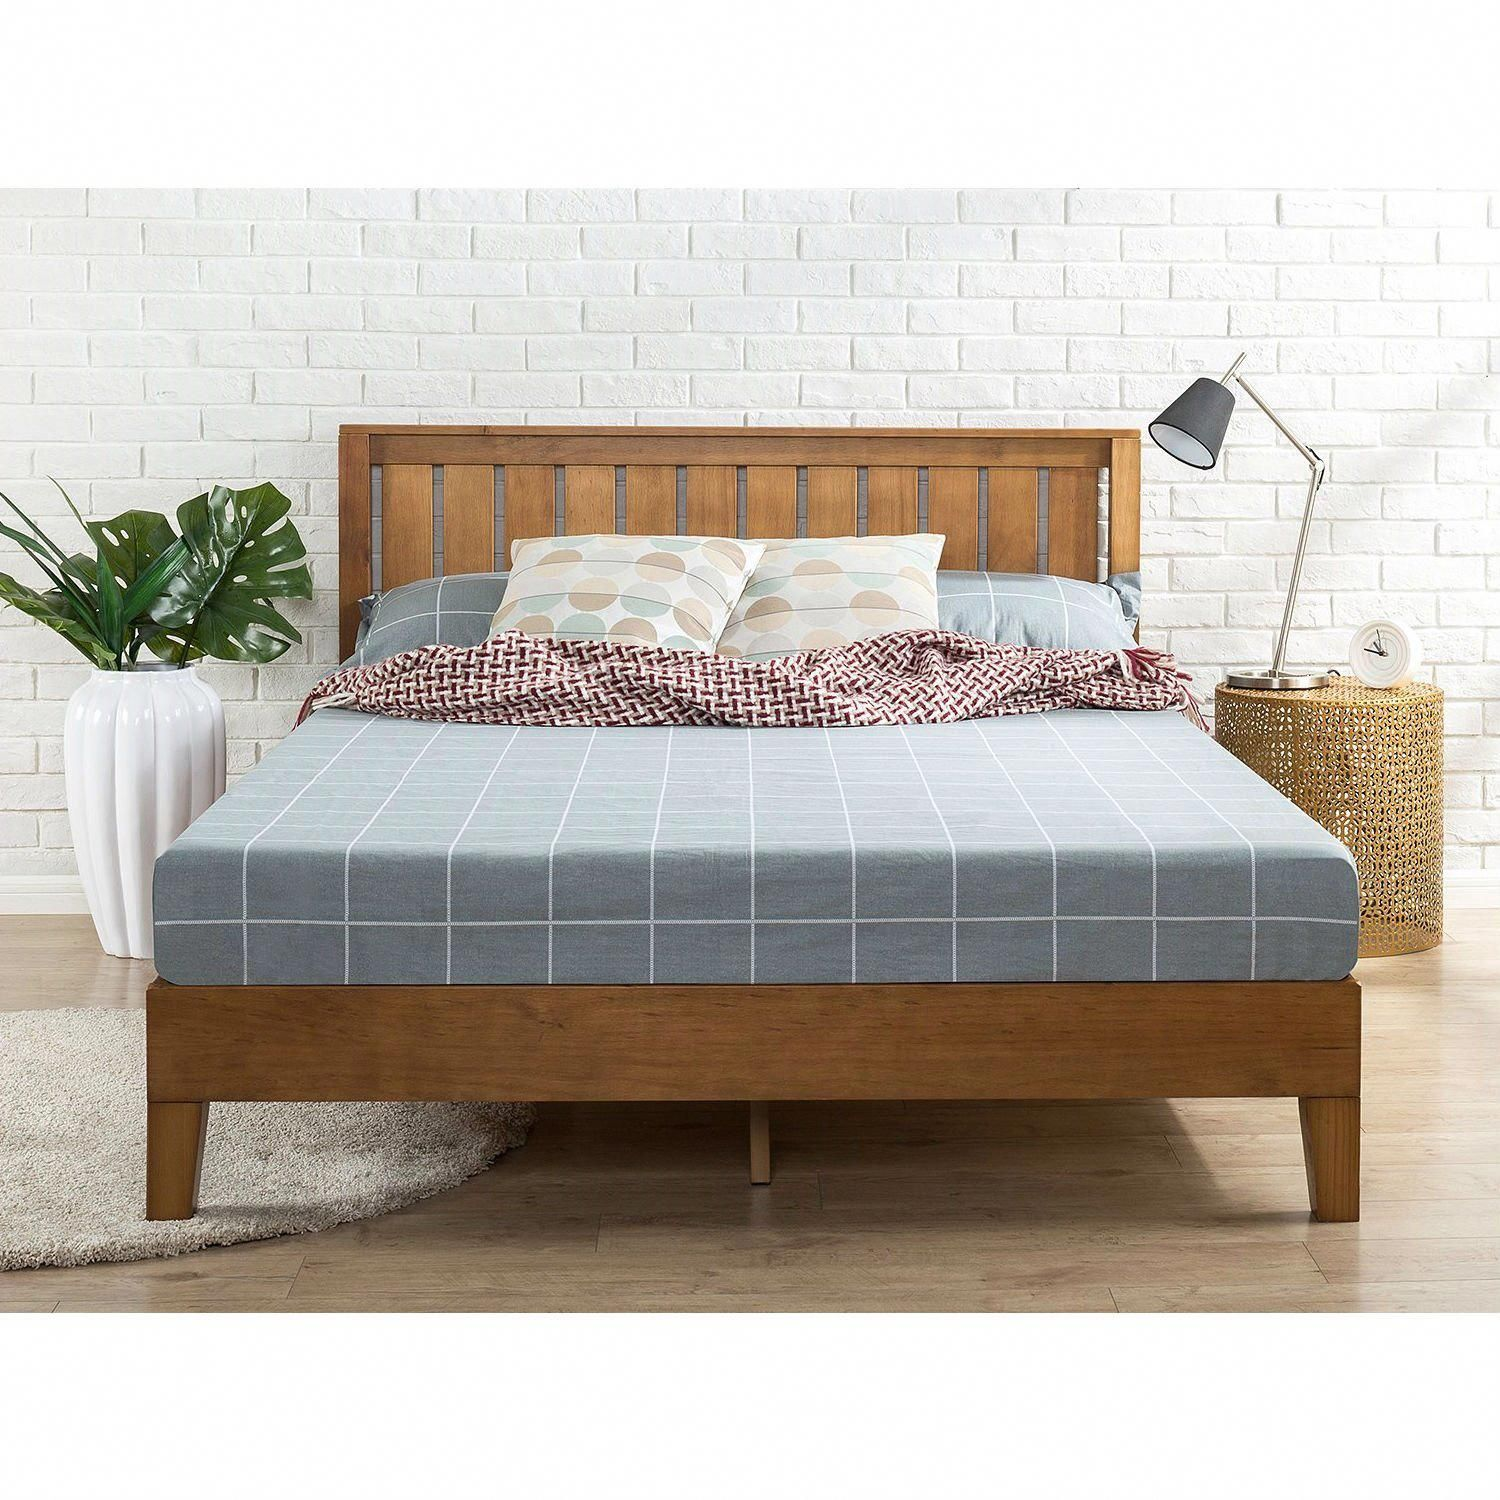 King size Solid Wood Platform Bed Frame with Headboard in